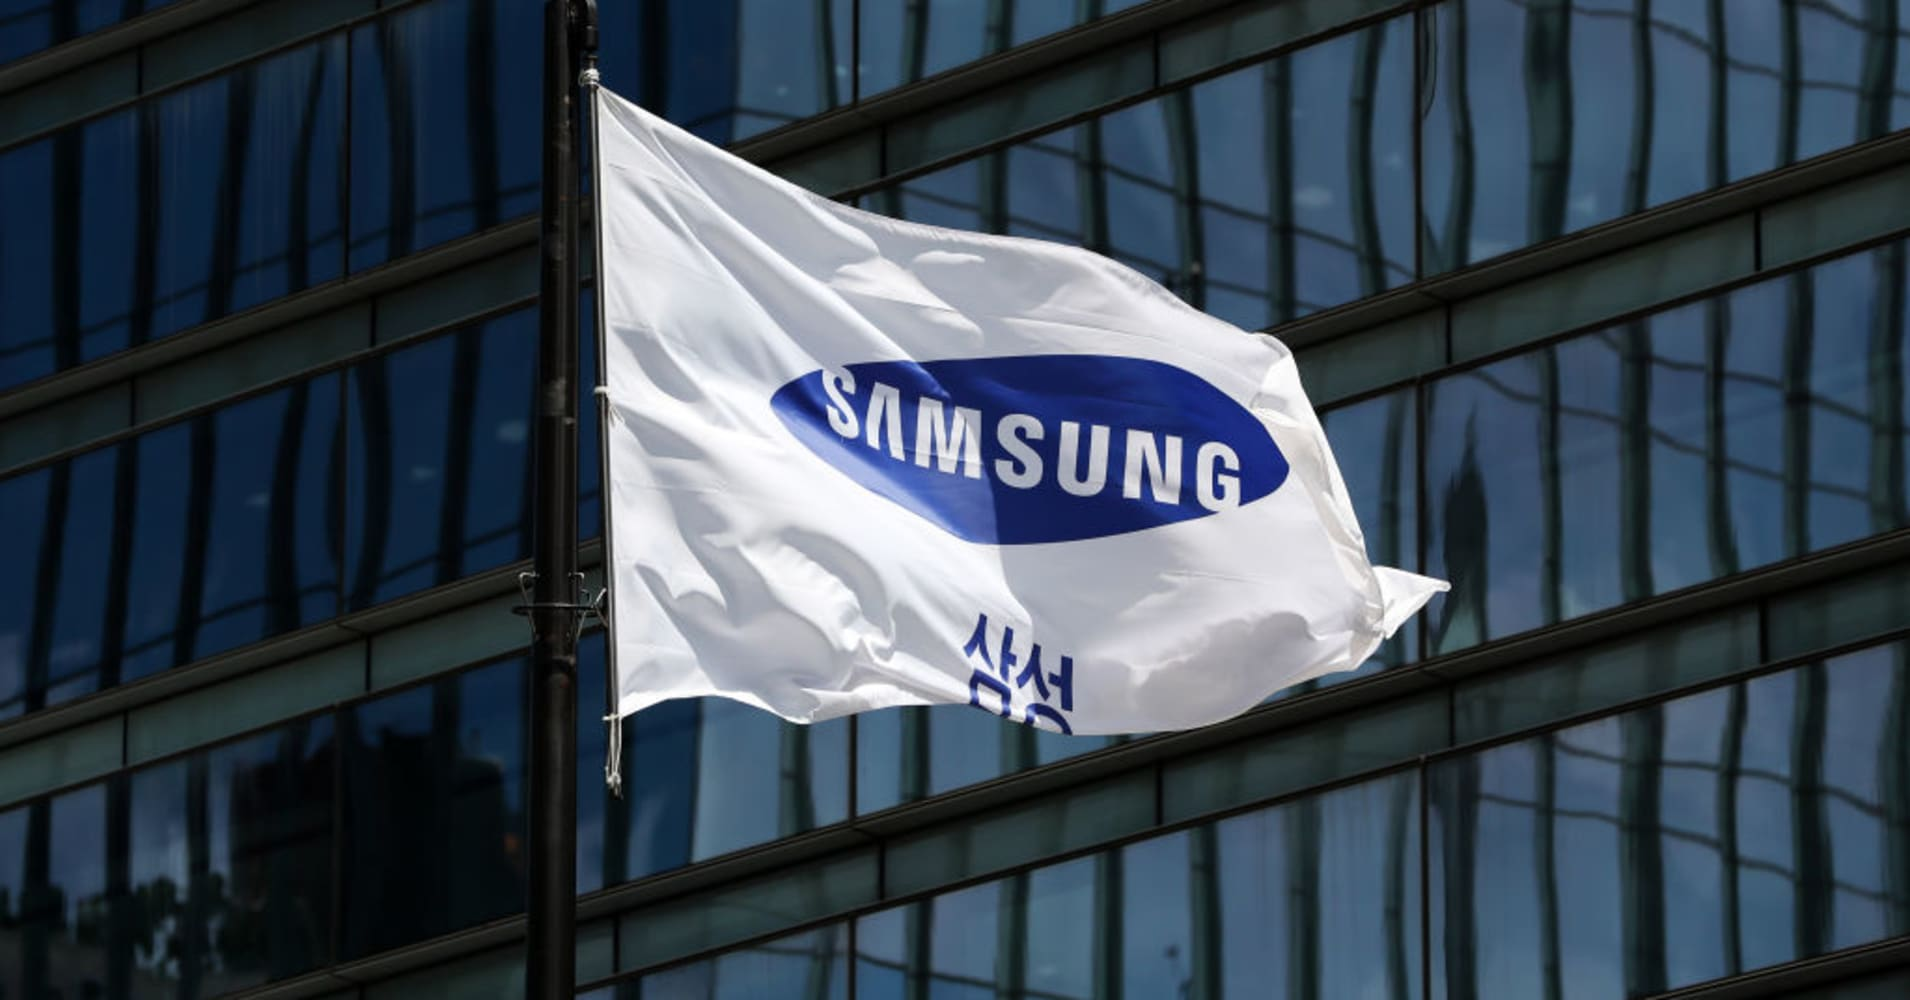 Samsung Earnings Guidance Record Profit Expected